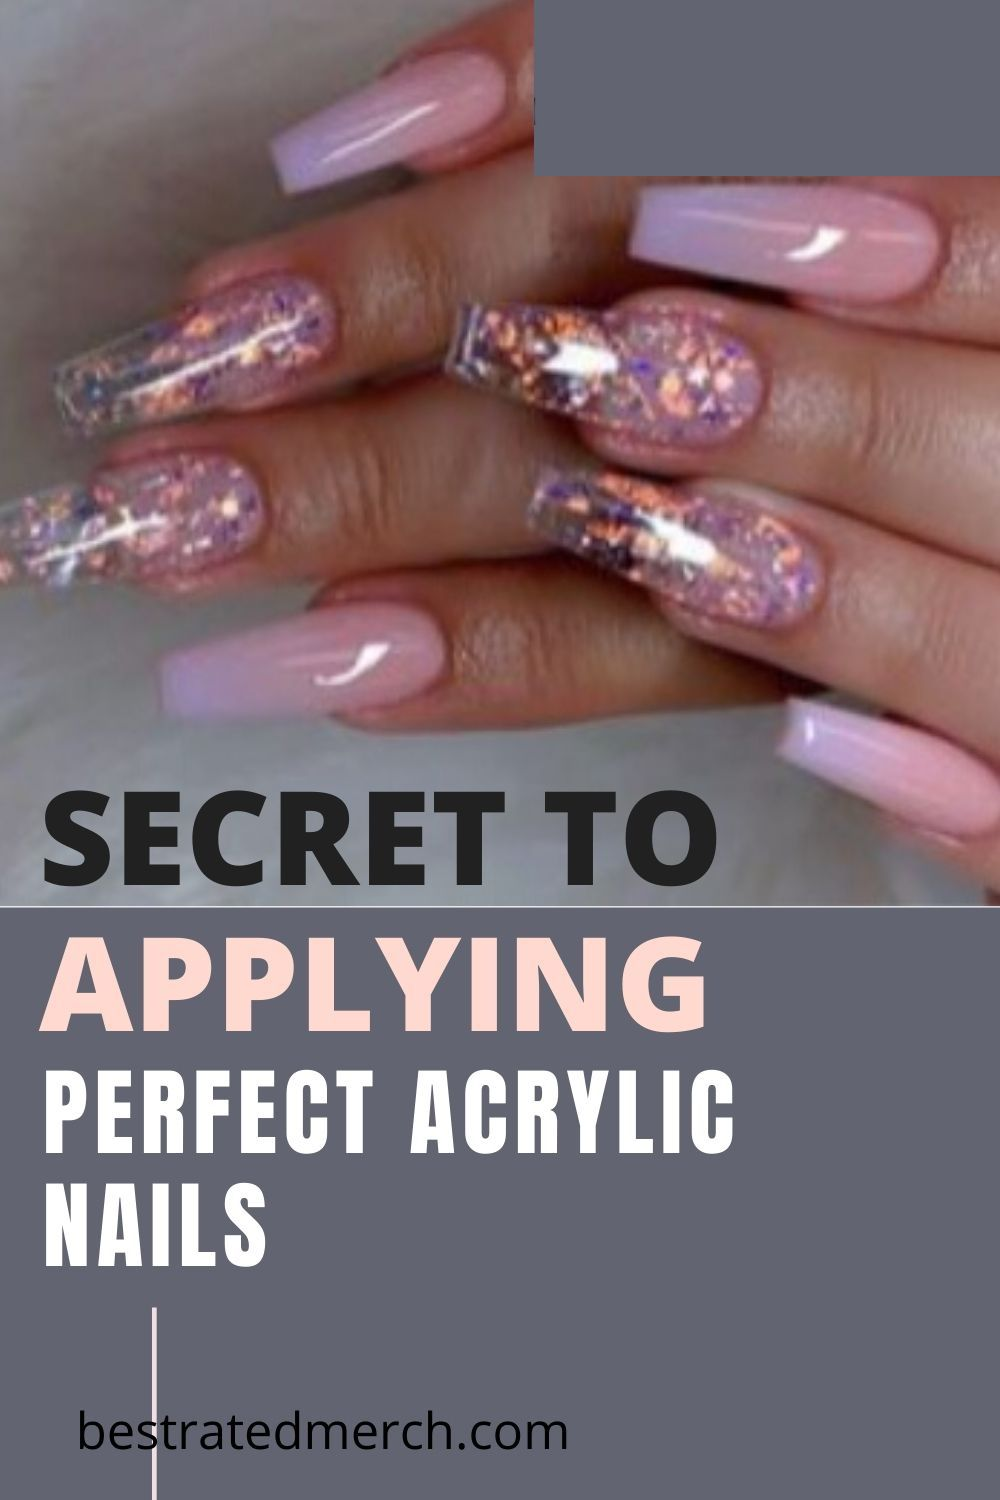 How to apply acrylic nails at home properly step by step